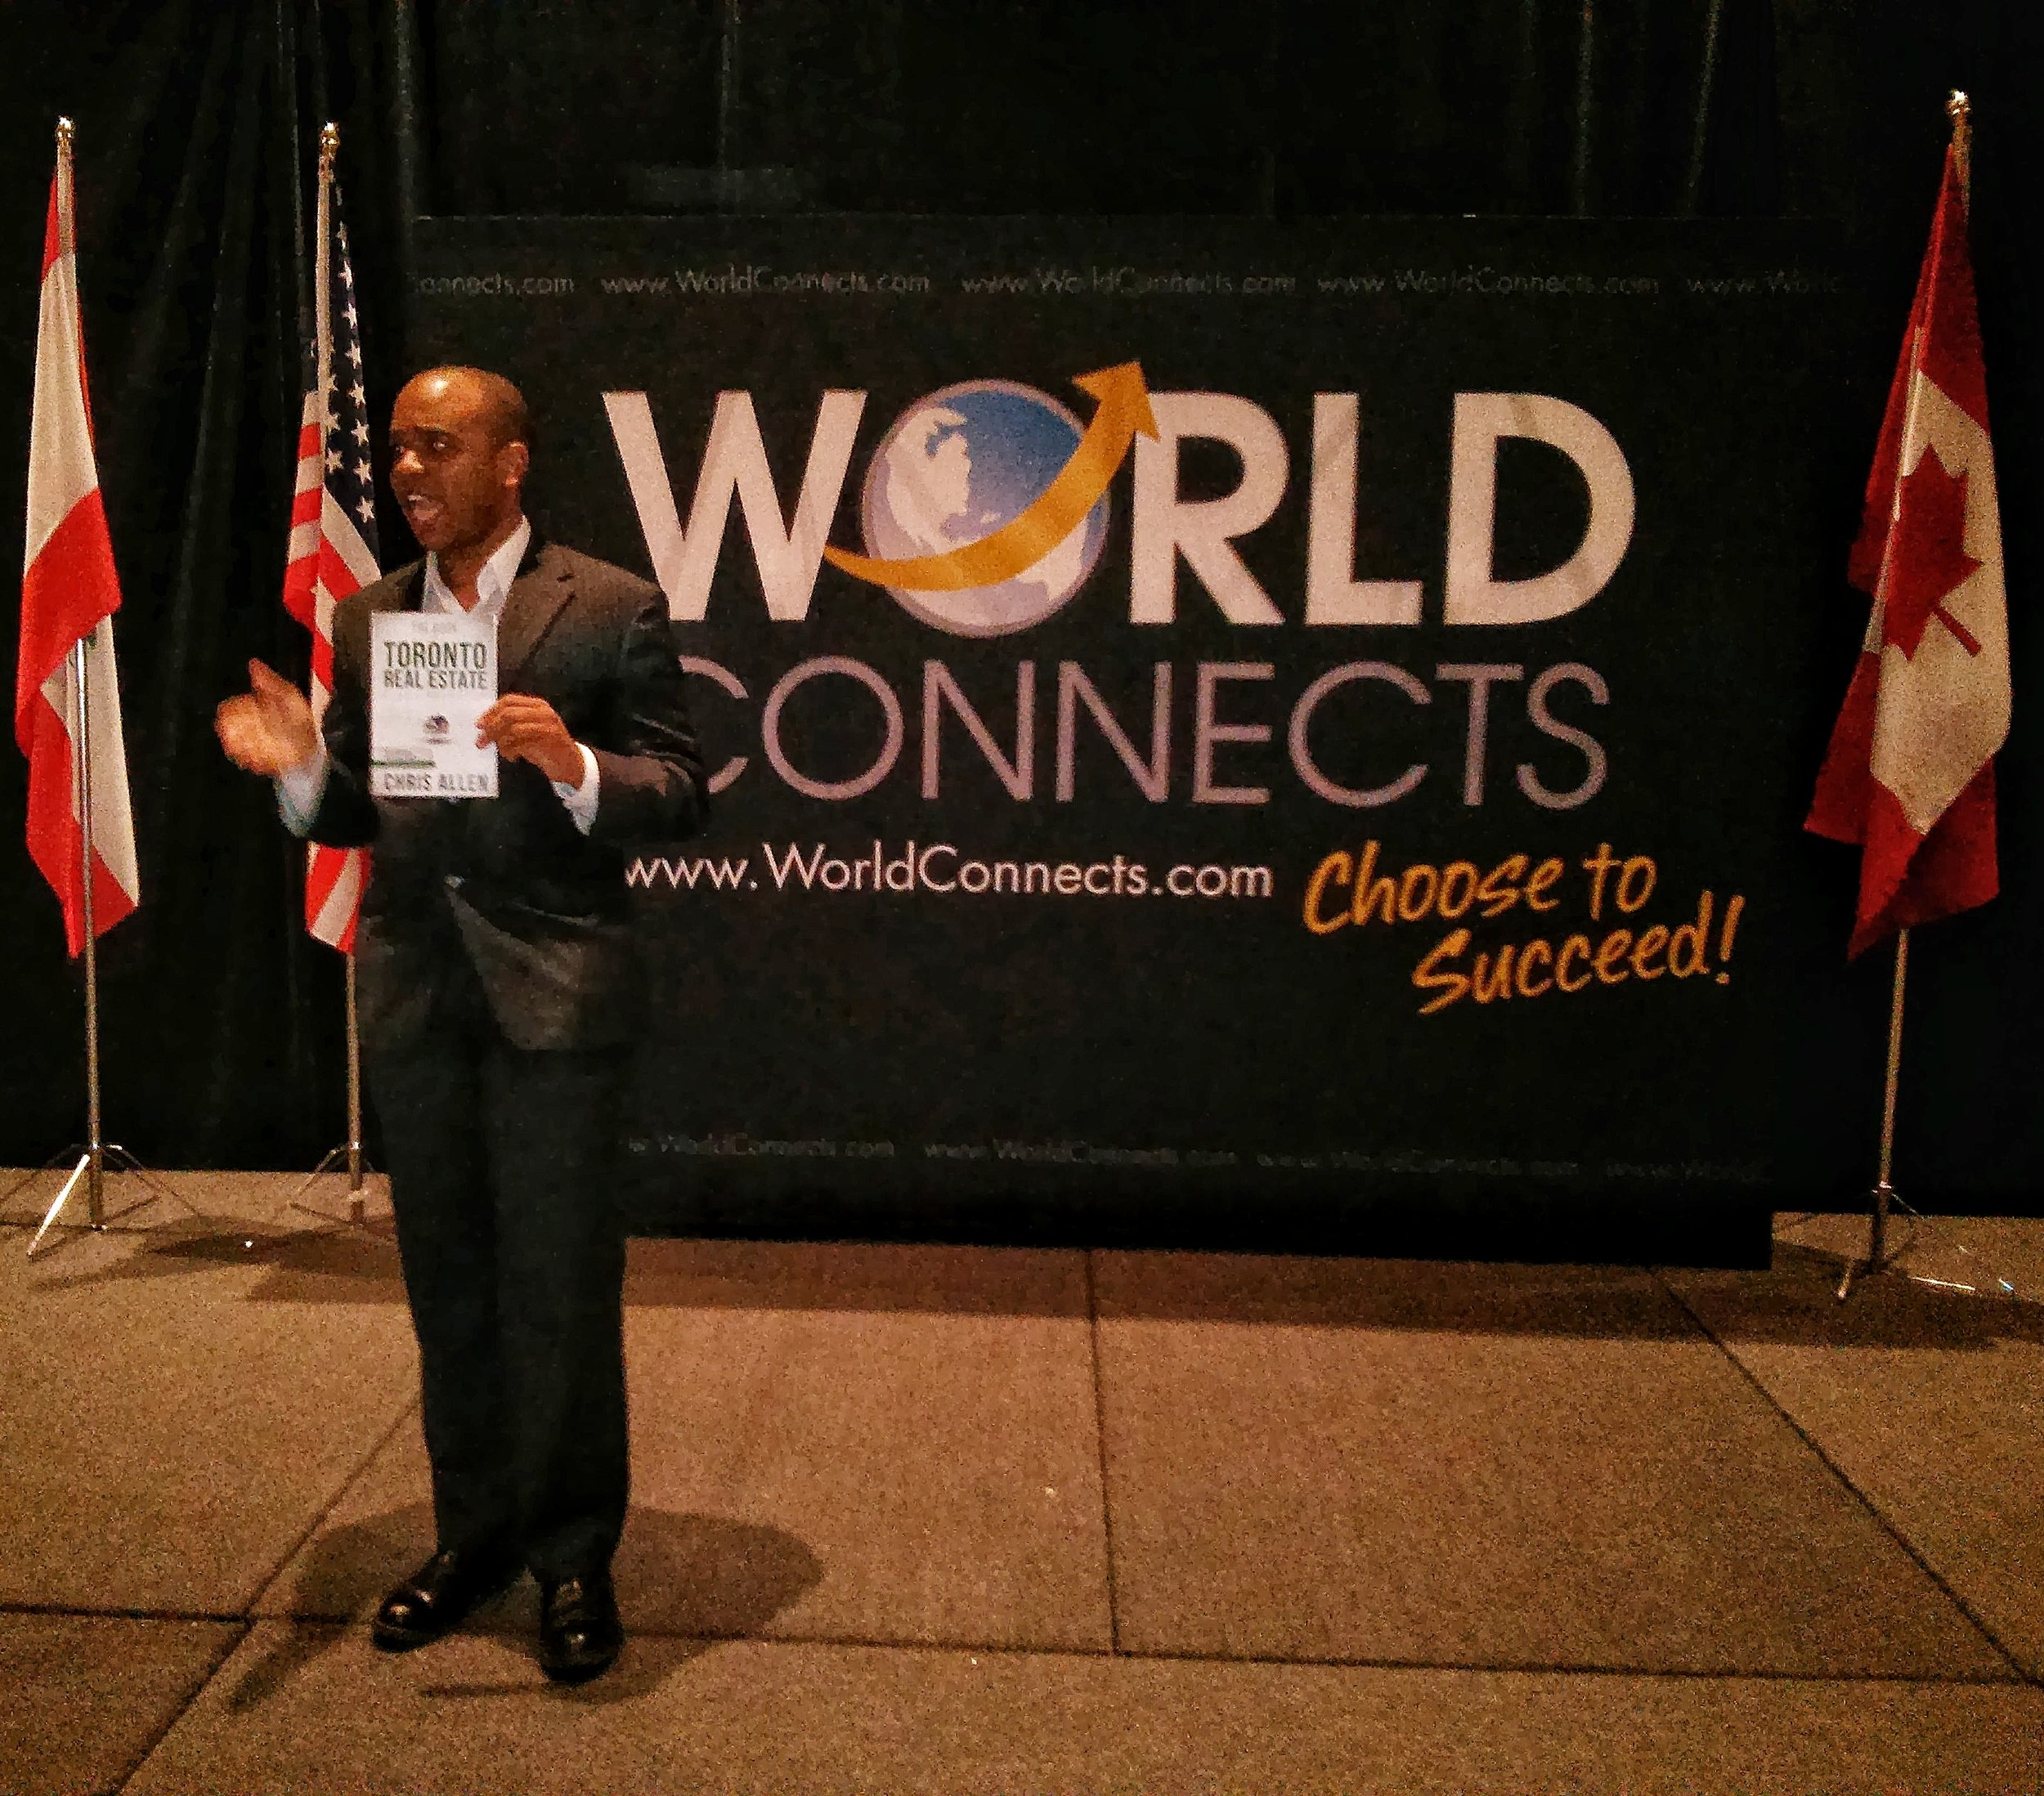 Allen presenting at World Connects Summit